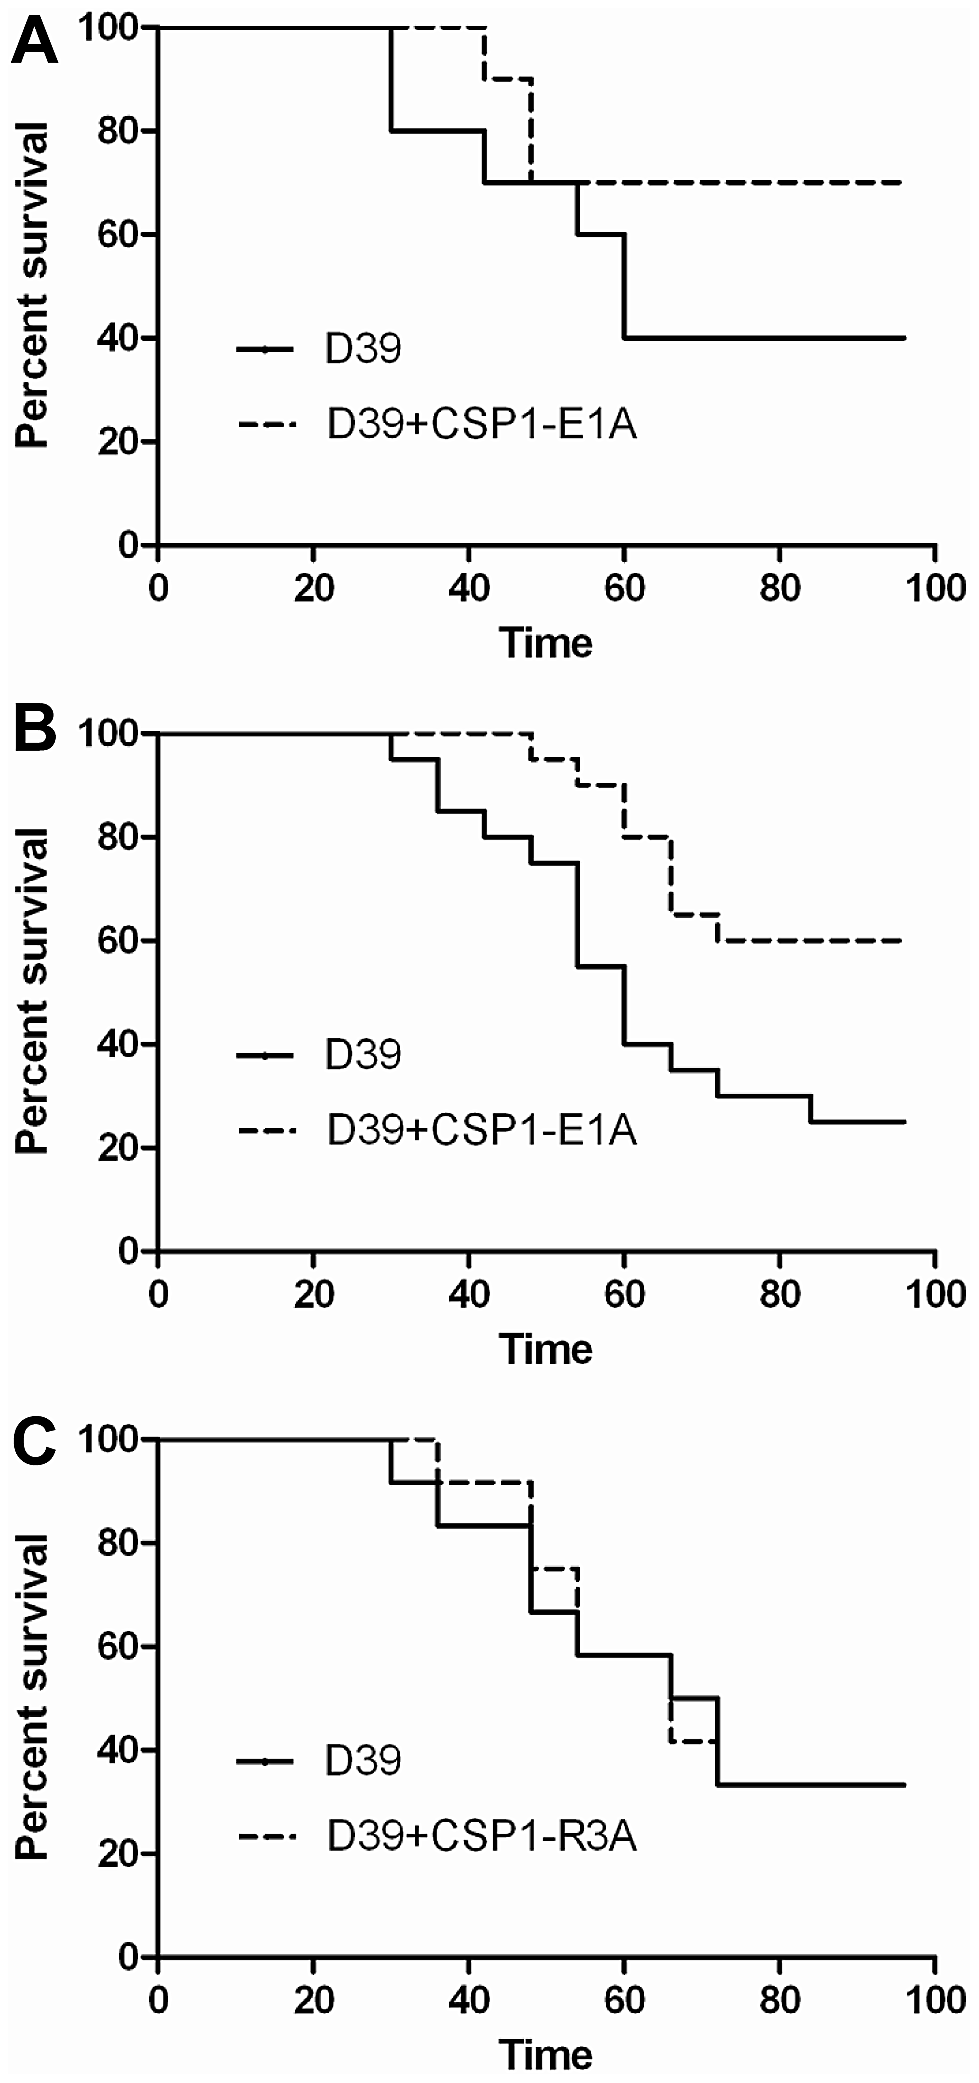 CSP1-E1A attenuates the mortality of mice infected with <i>S. pneumoniae</i>.